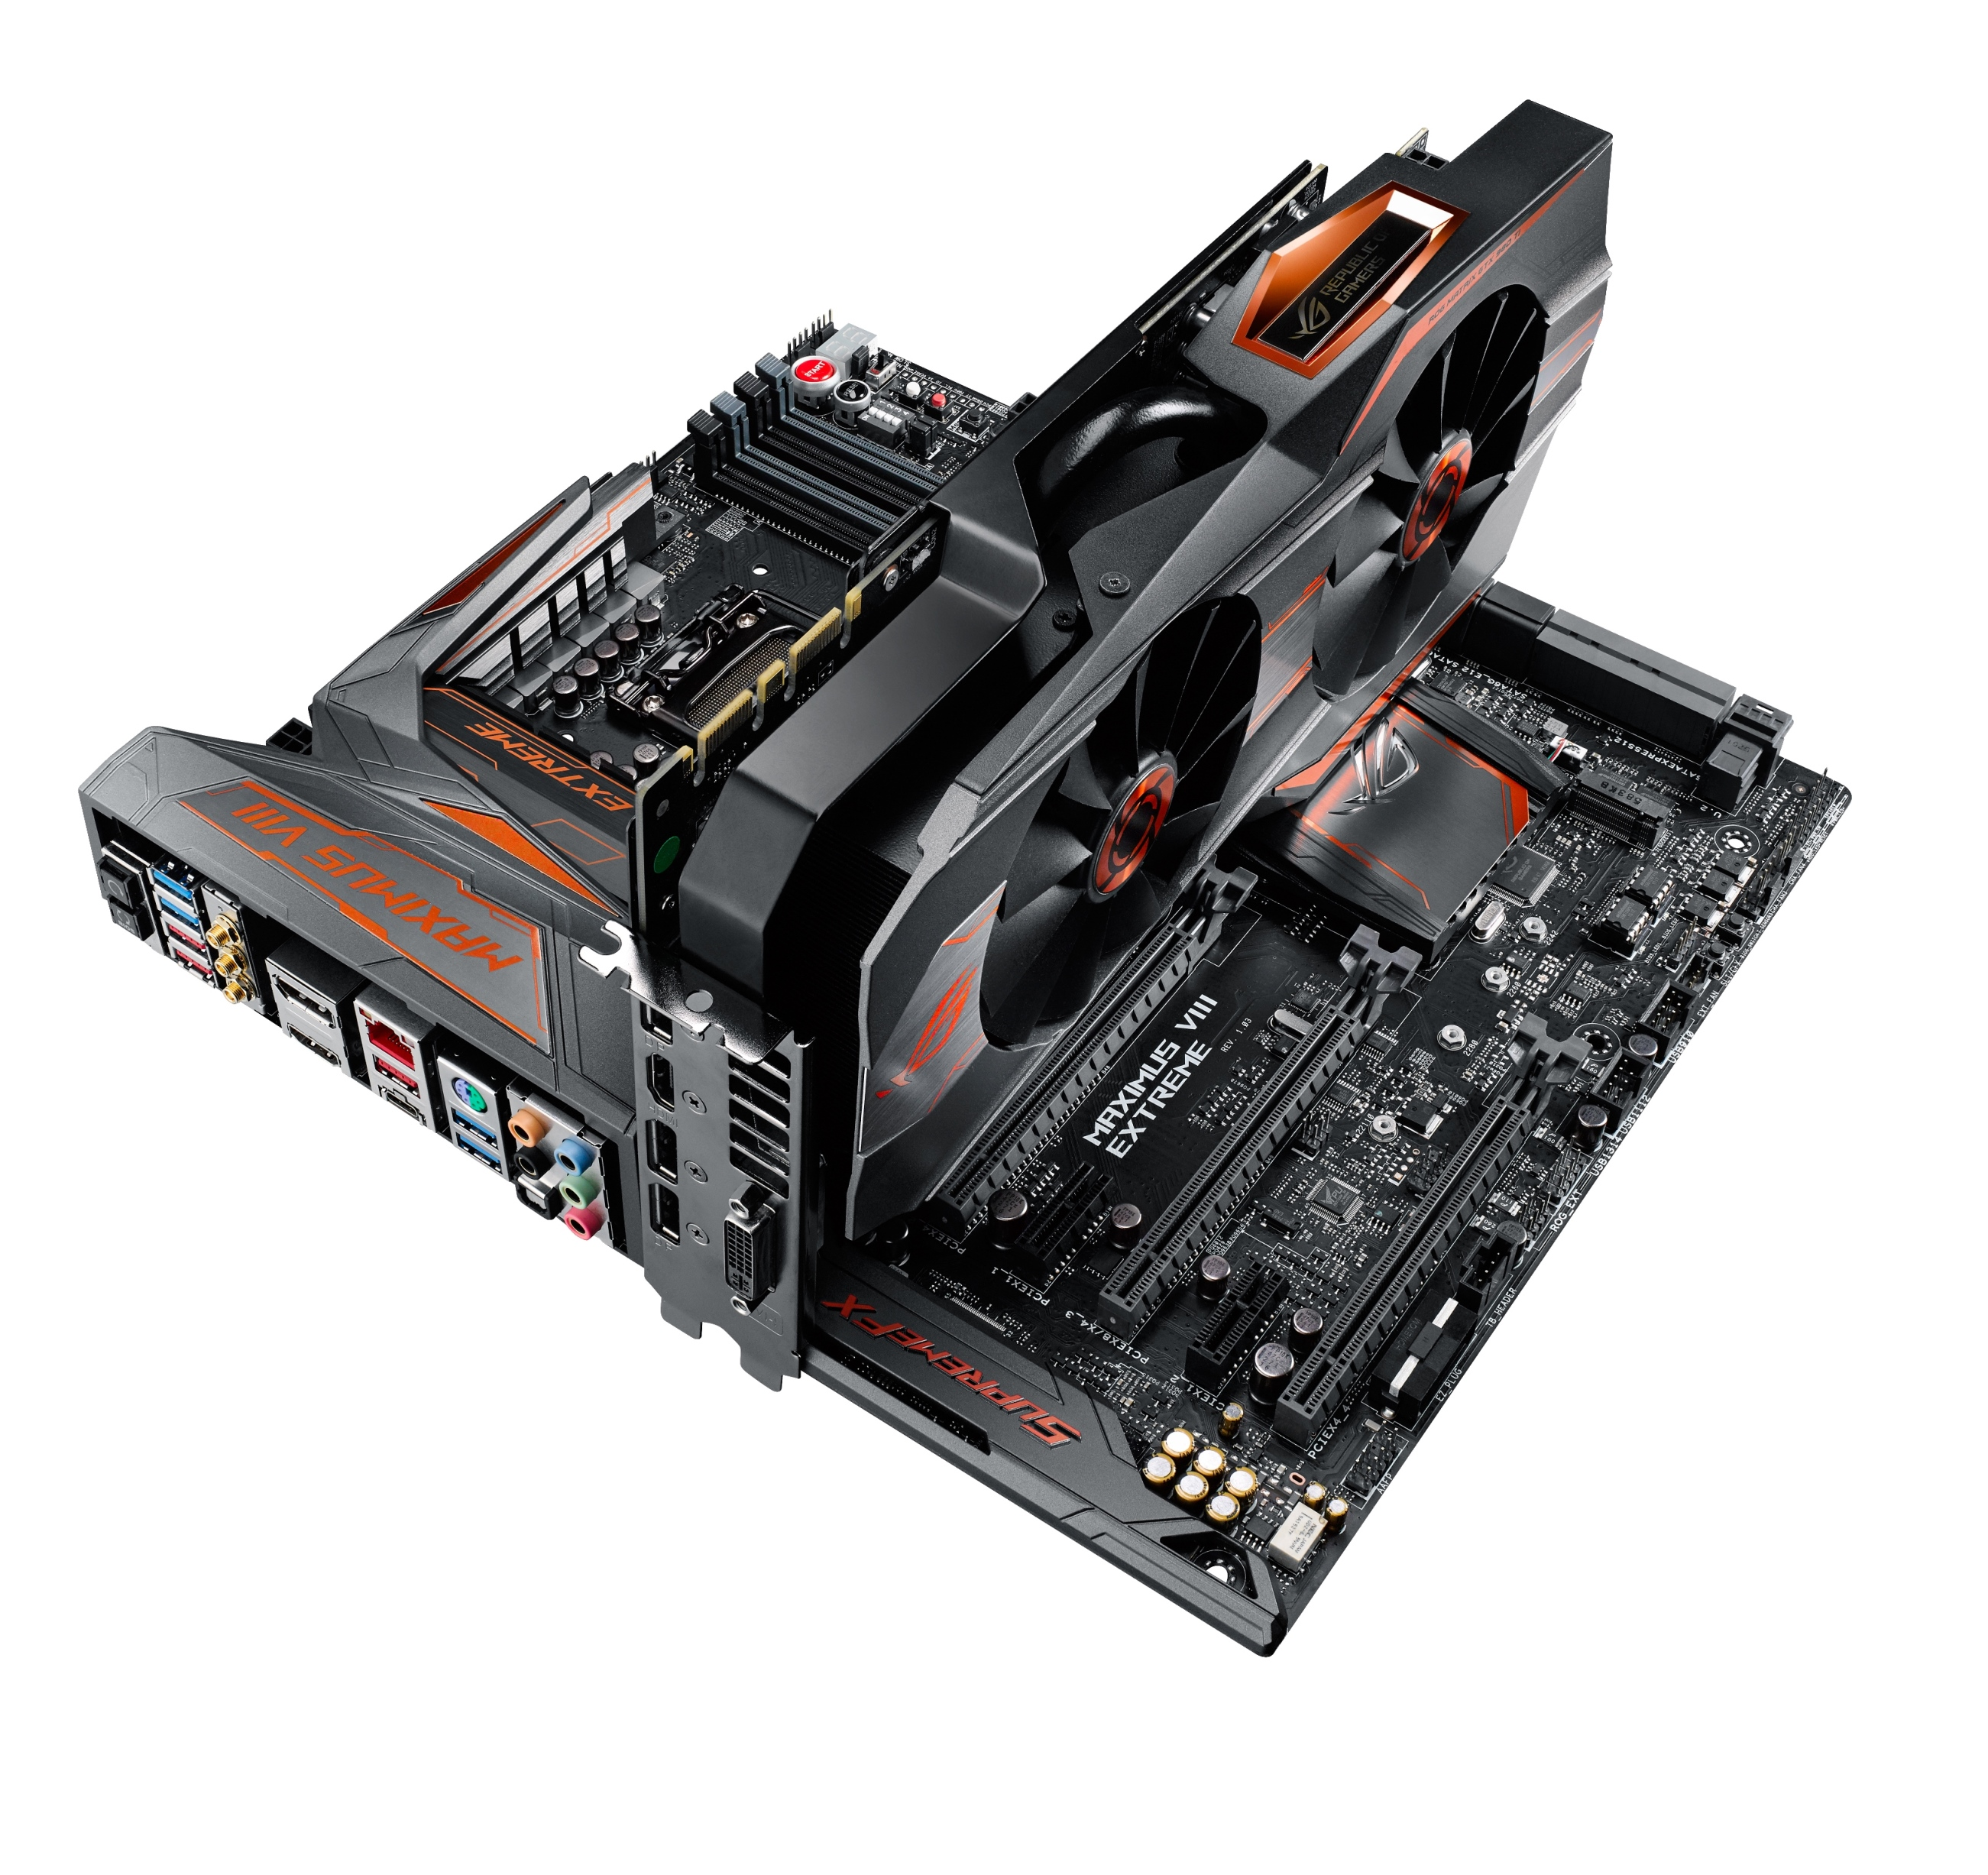 Republic Auto Of Texas >> ASUS Republic of Gamers Announces Maximus VIII Extreme/Assembly and Matrix GTX 980 Ti | ROG ...